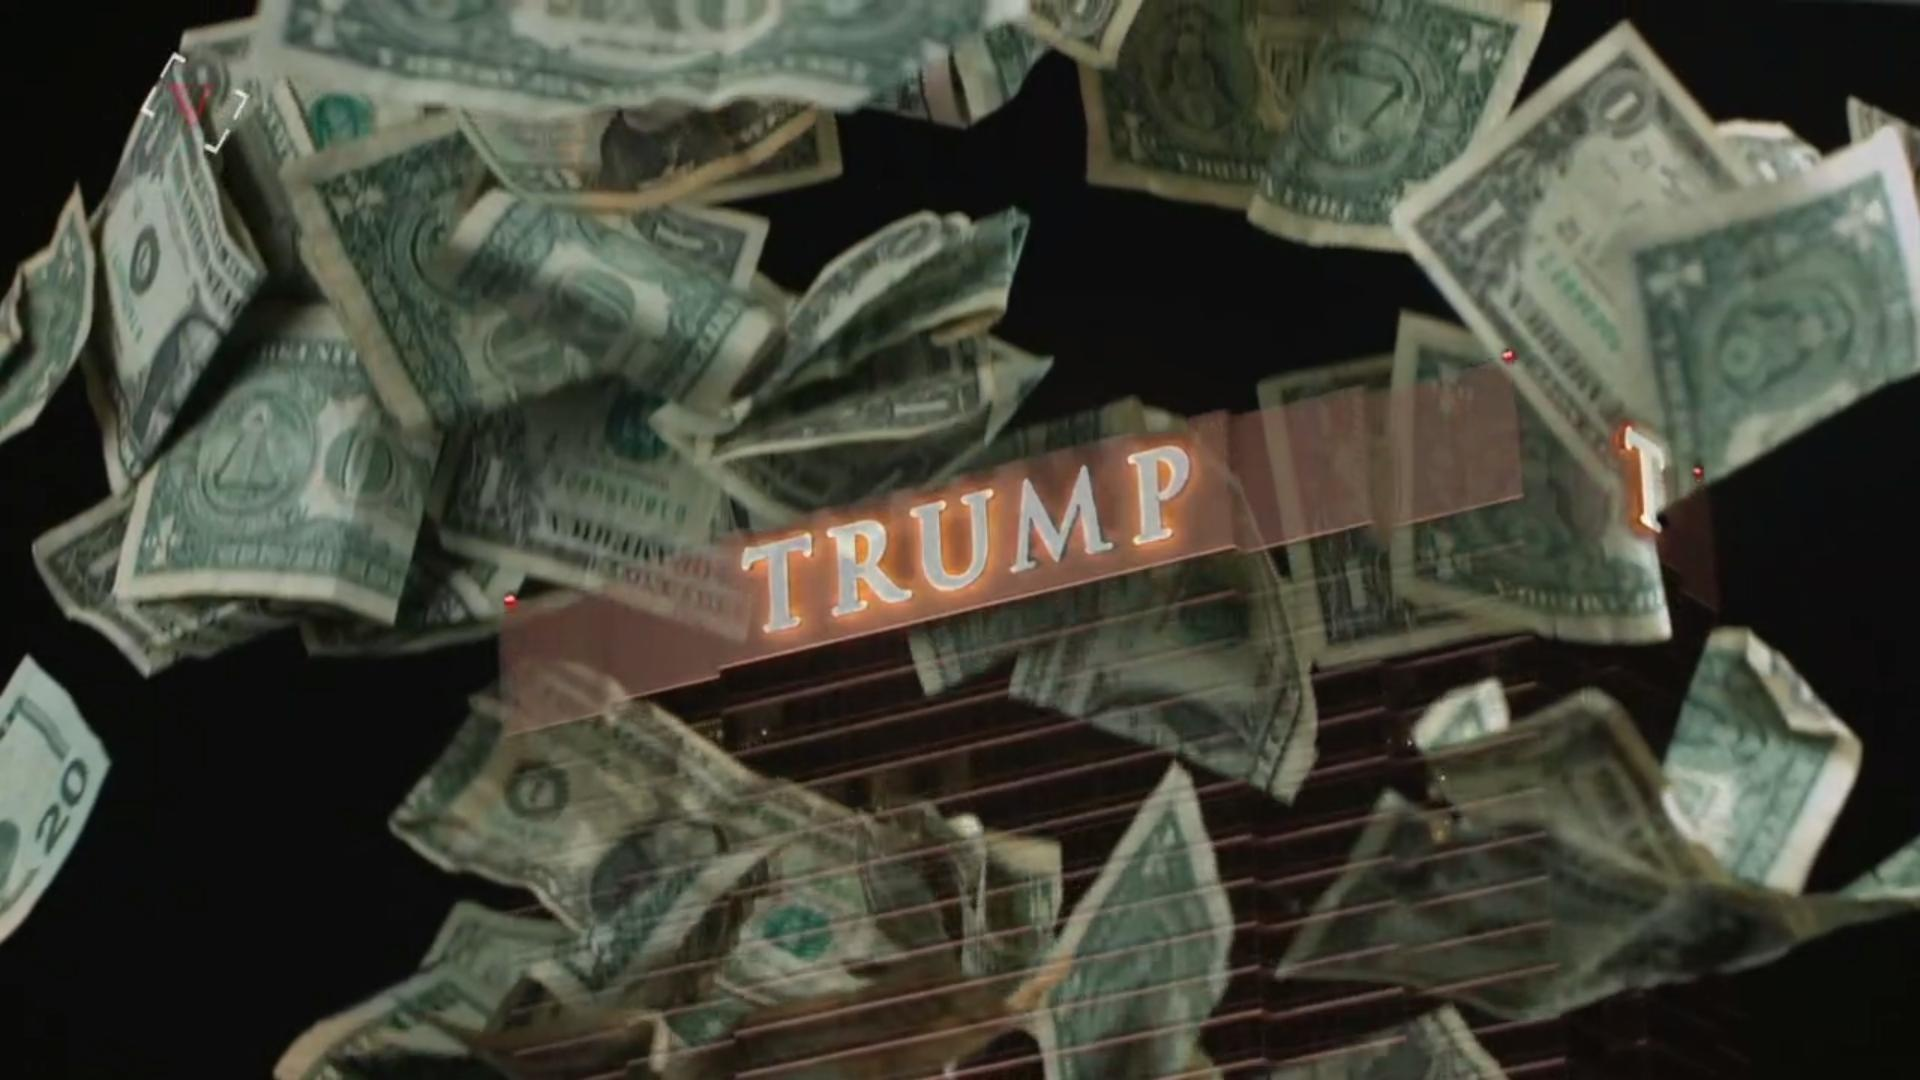 Trump Has Already Spent $500,000 In Re-election Funds On His Own Businesses